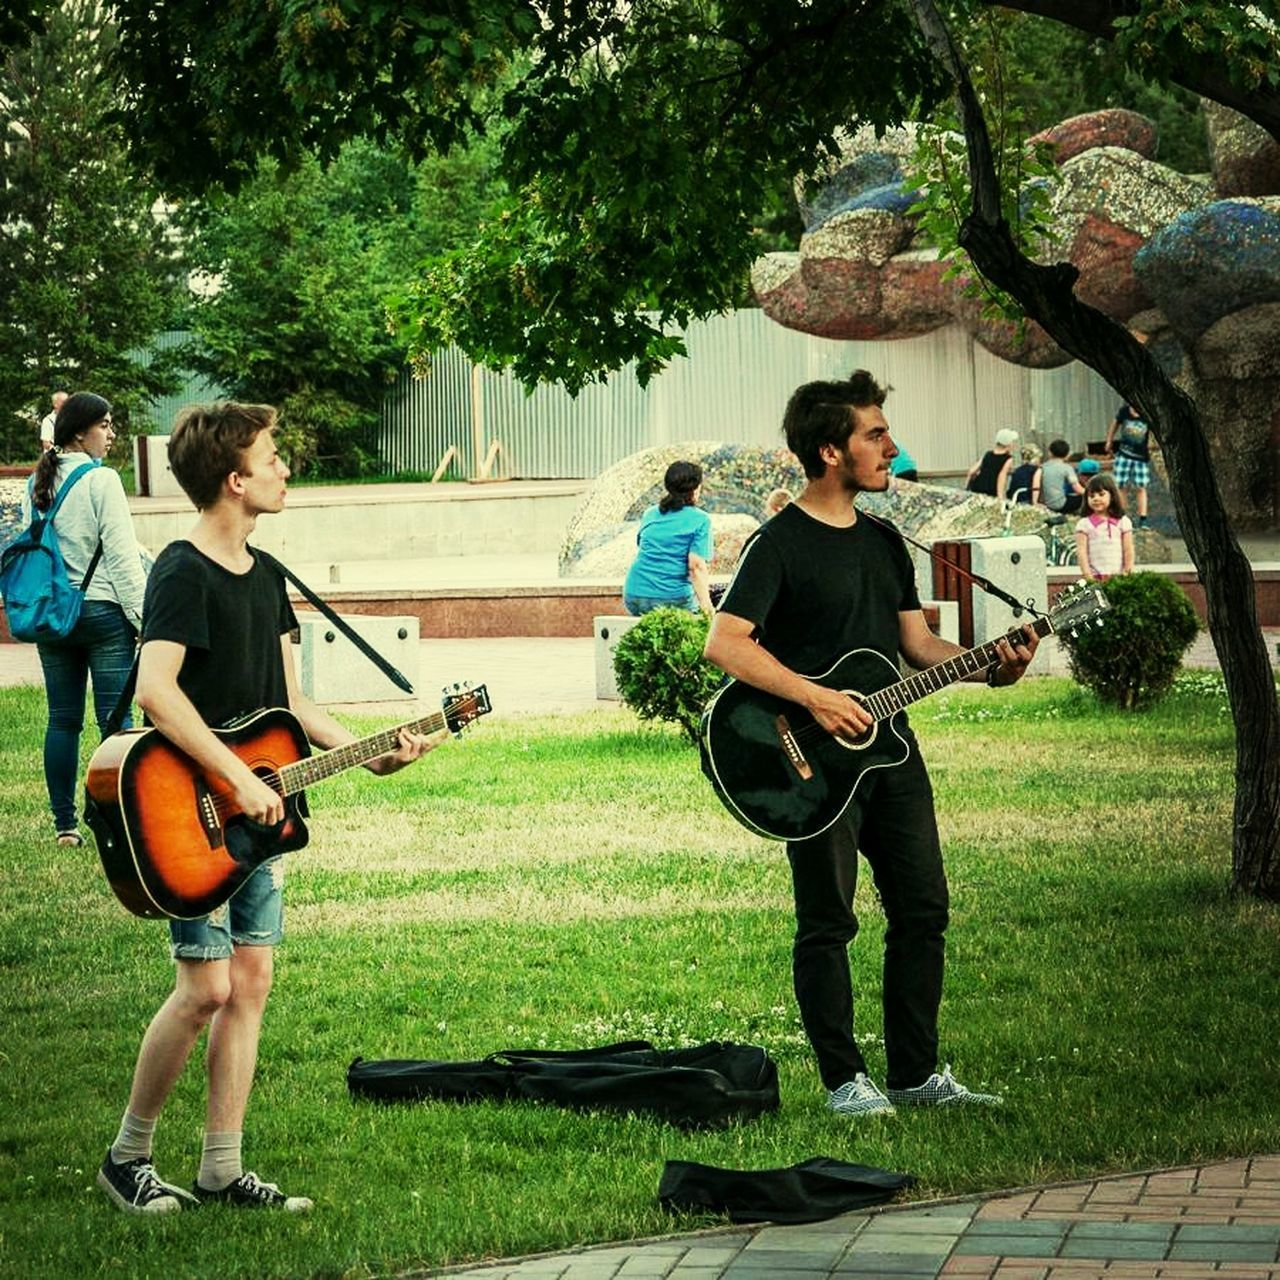 guitar, music, playing, musical instrument, full length, musician, performance, string instrument, plucking an instrument, arts culture and entertainment, leisure activity, day, casual clothing, togetherness, electric guitar, tree, skill, musical instrument string, outdoors, standing, real people, young adult, people, adult, adults only